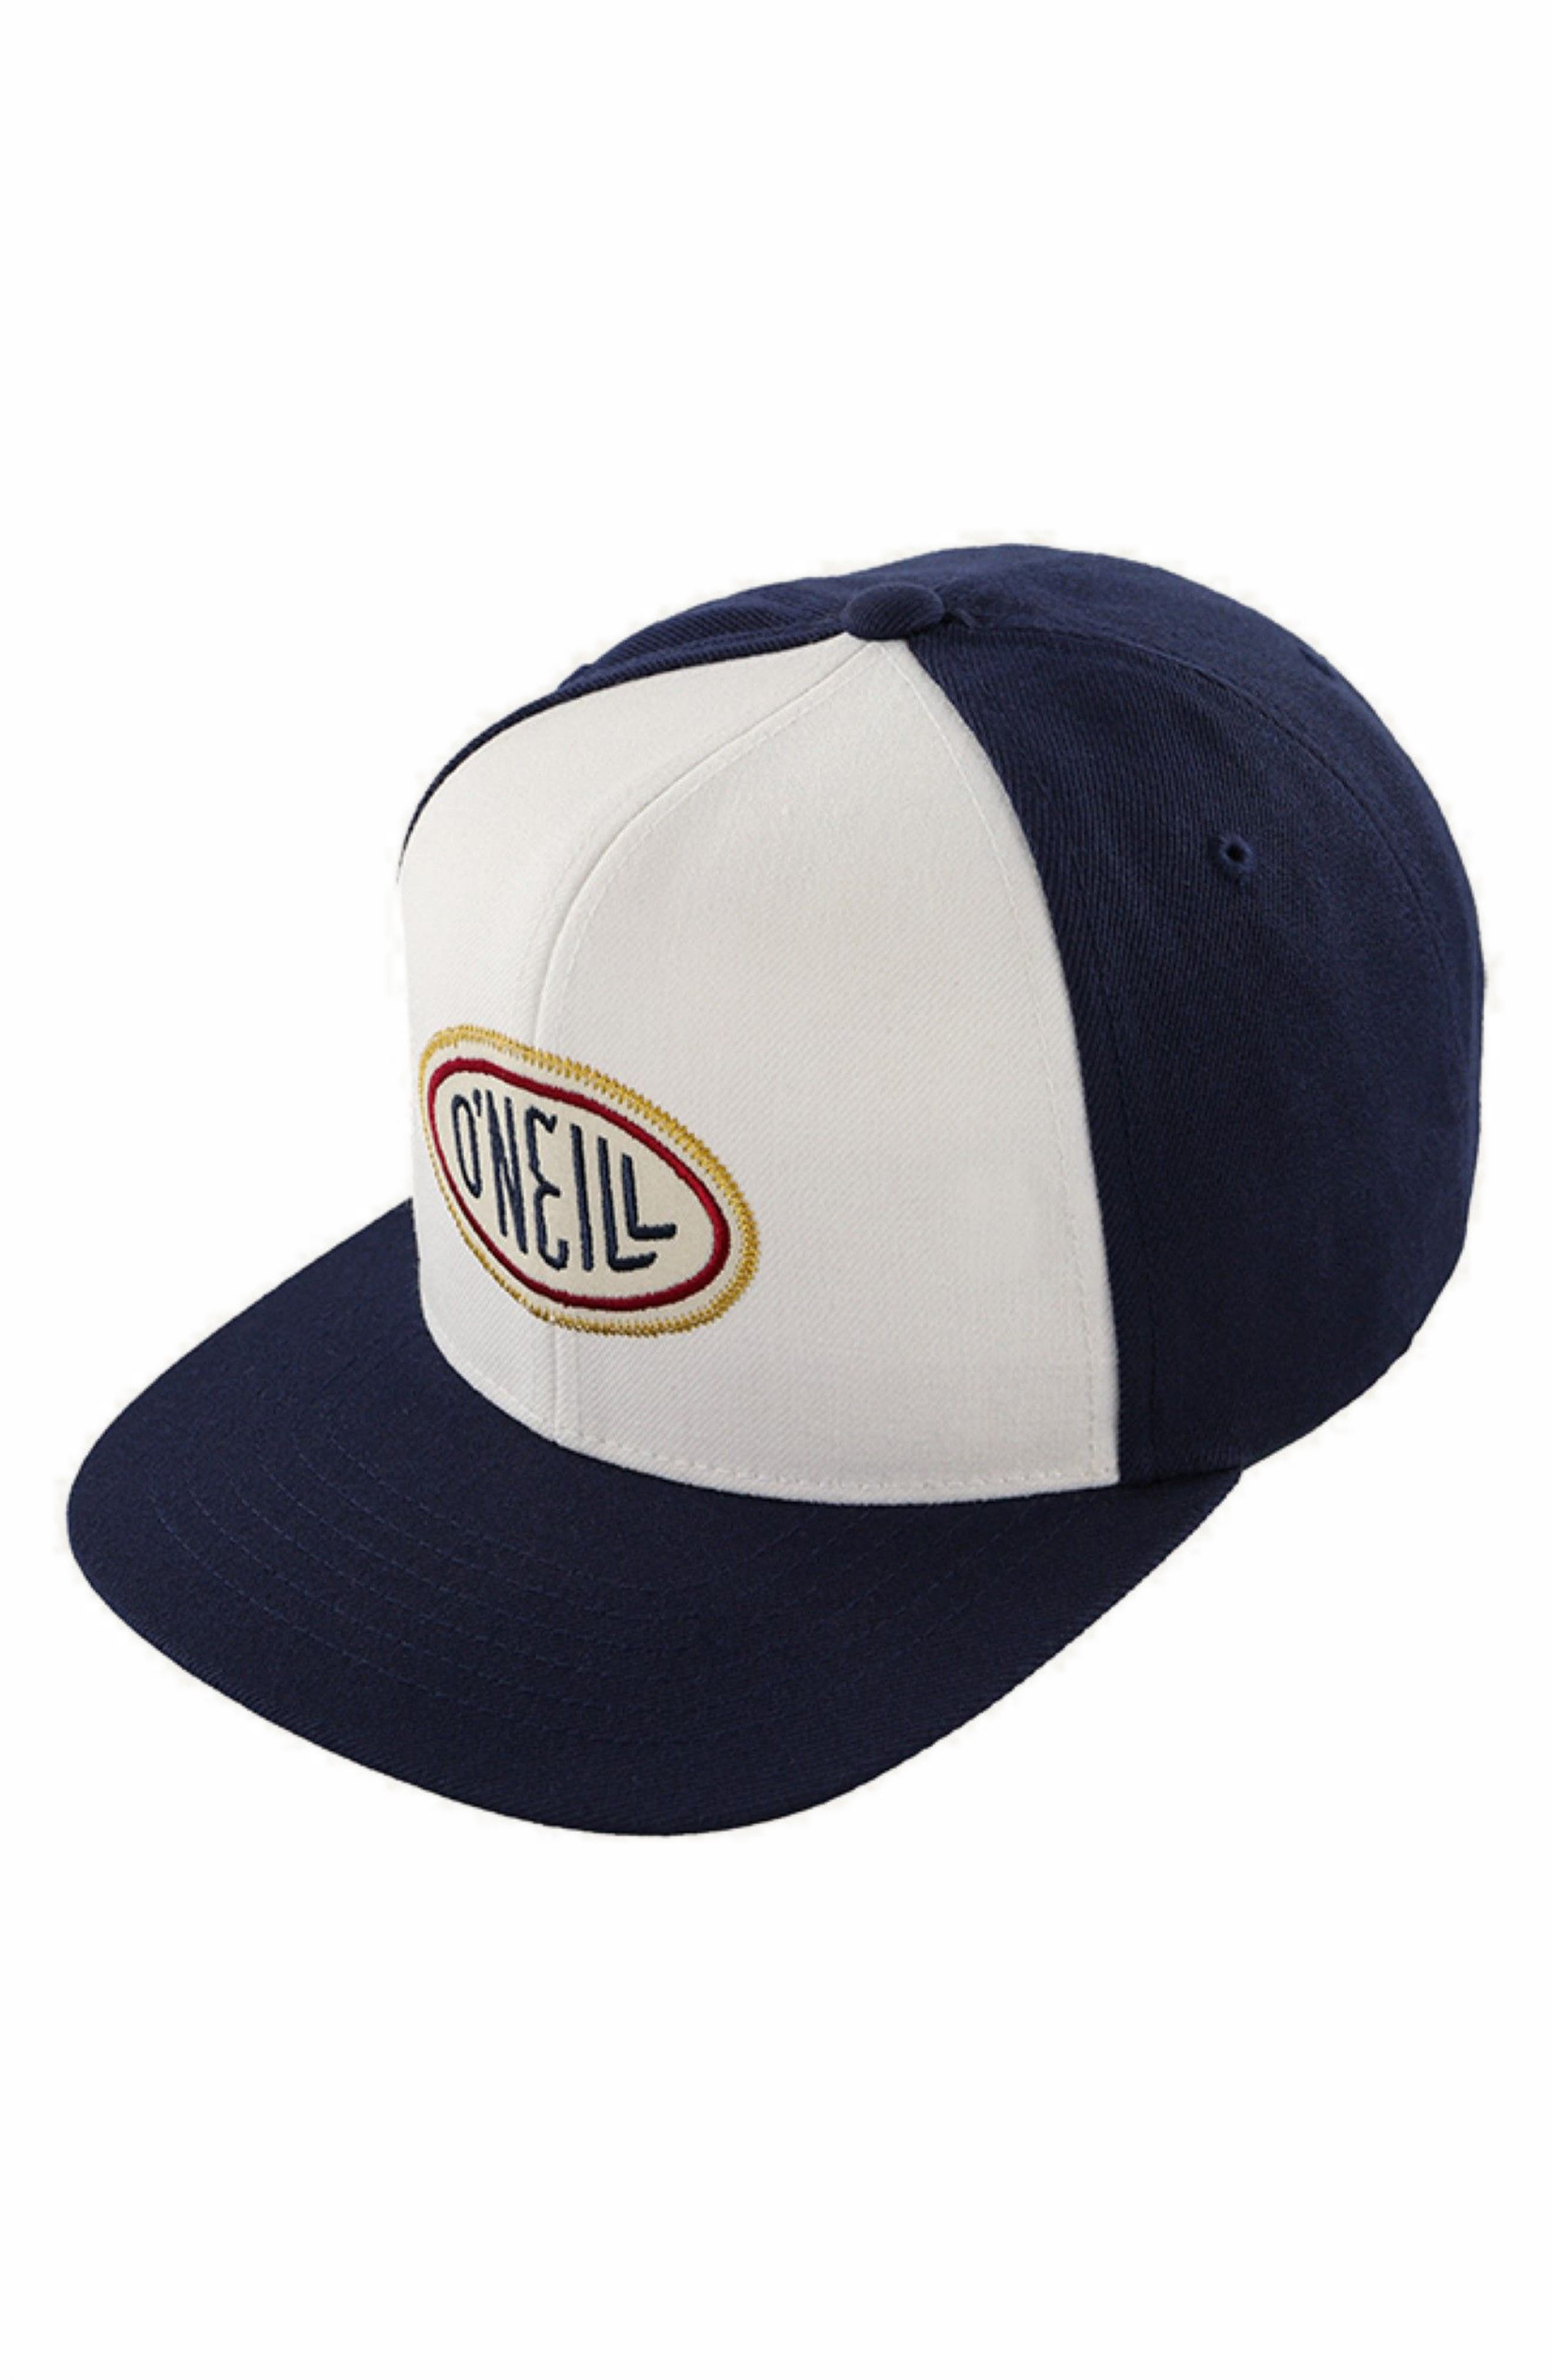 Roadie Logo Cap,                             Main thumbnail 1, color,                             Navy